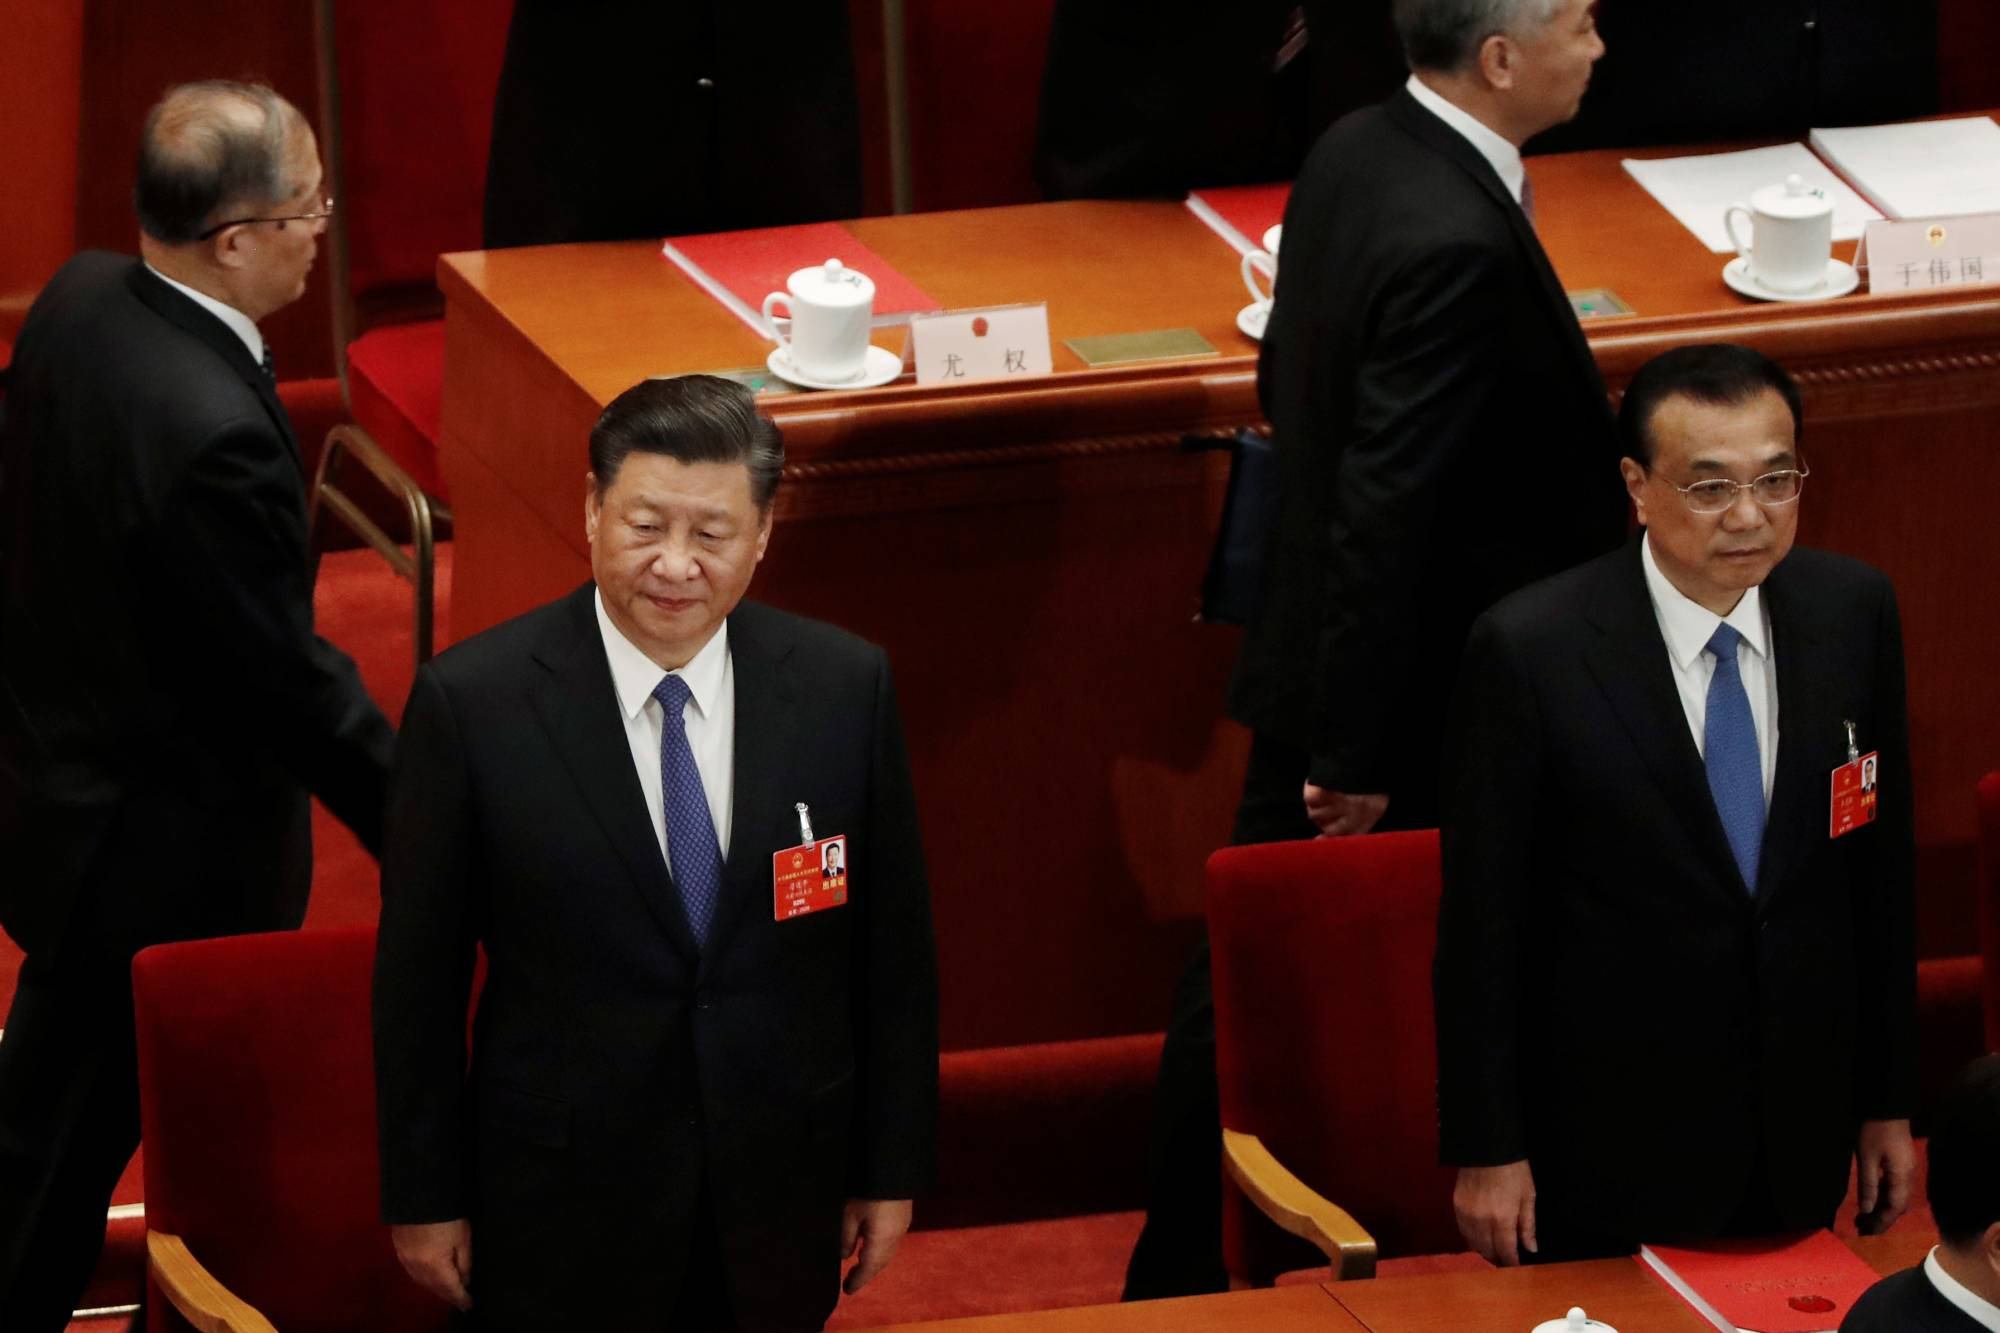 Unlike Western leaders, who typically have degrees in law or economics, Chinese policymakers are mostly scientists and engineers. As a result, they are more likely to think in systemic terms. | REUTERS